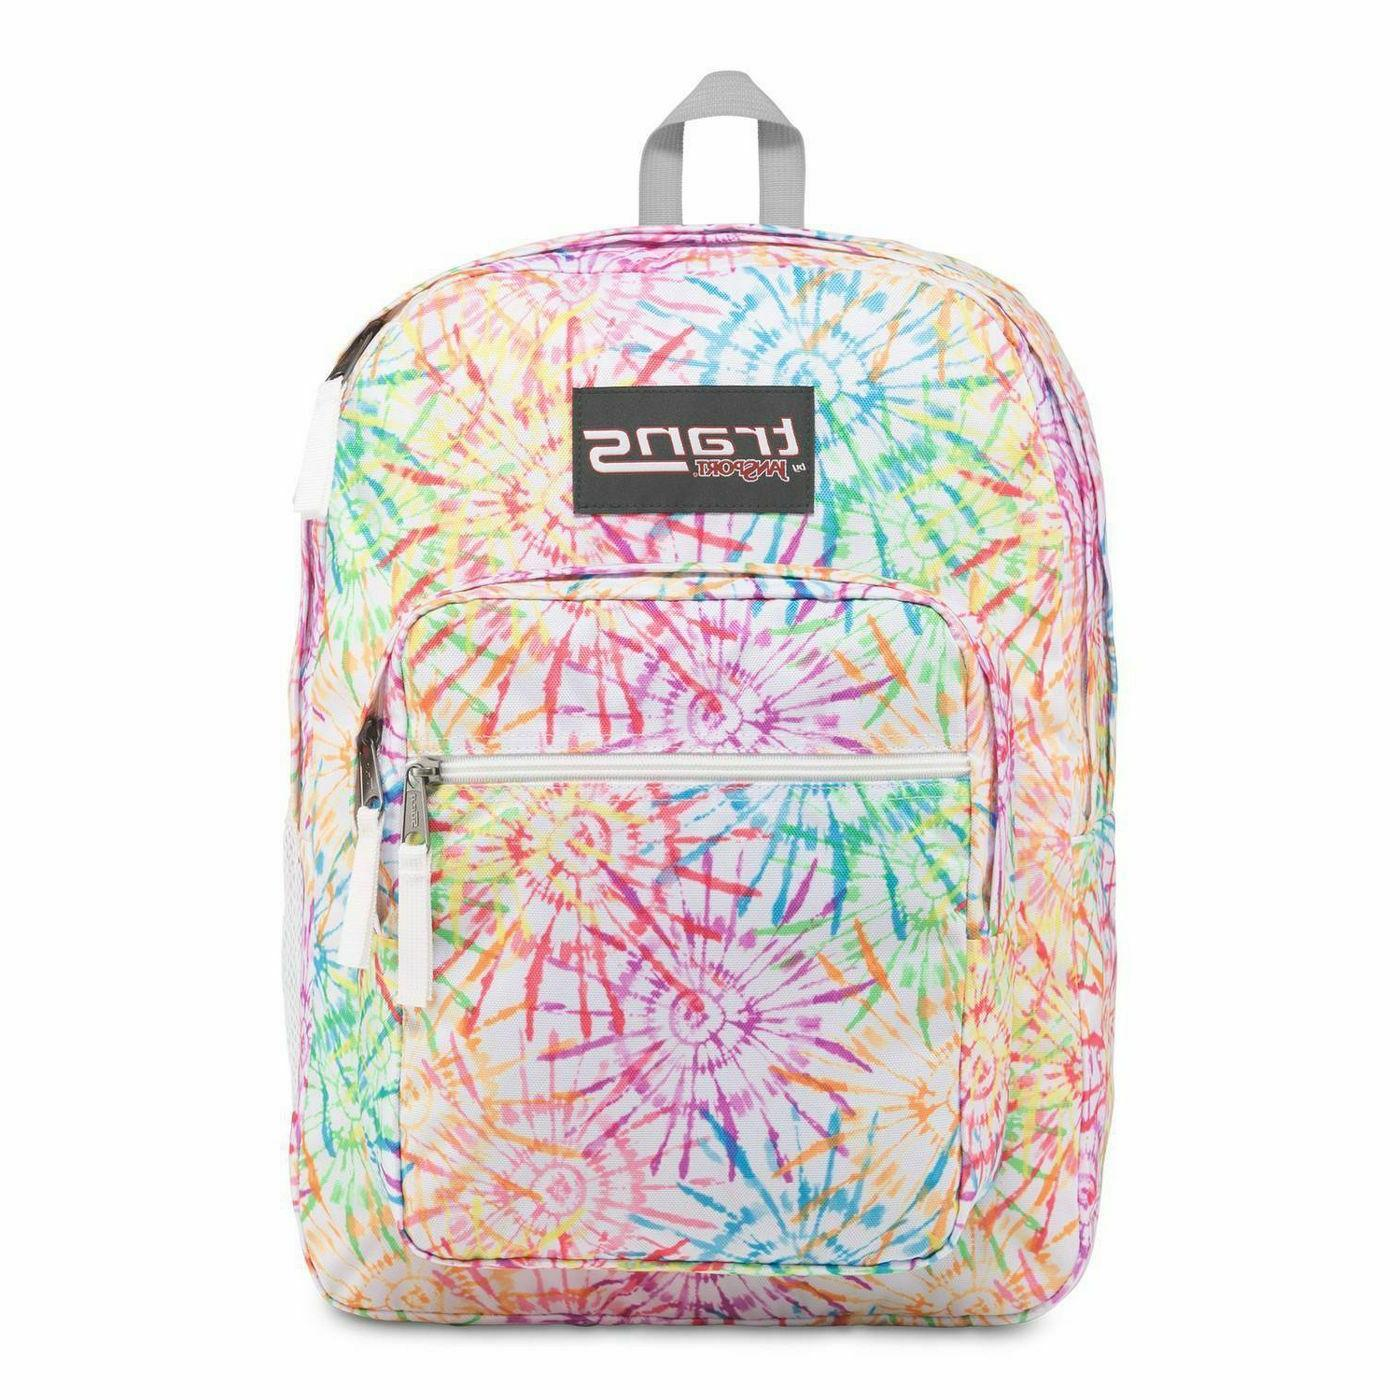 trans by 17 supermax backpack tie dizzle